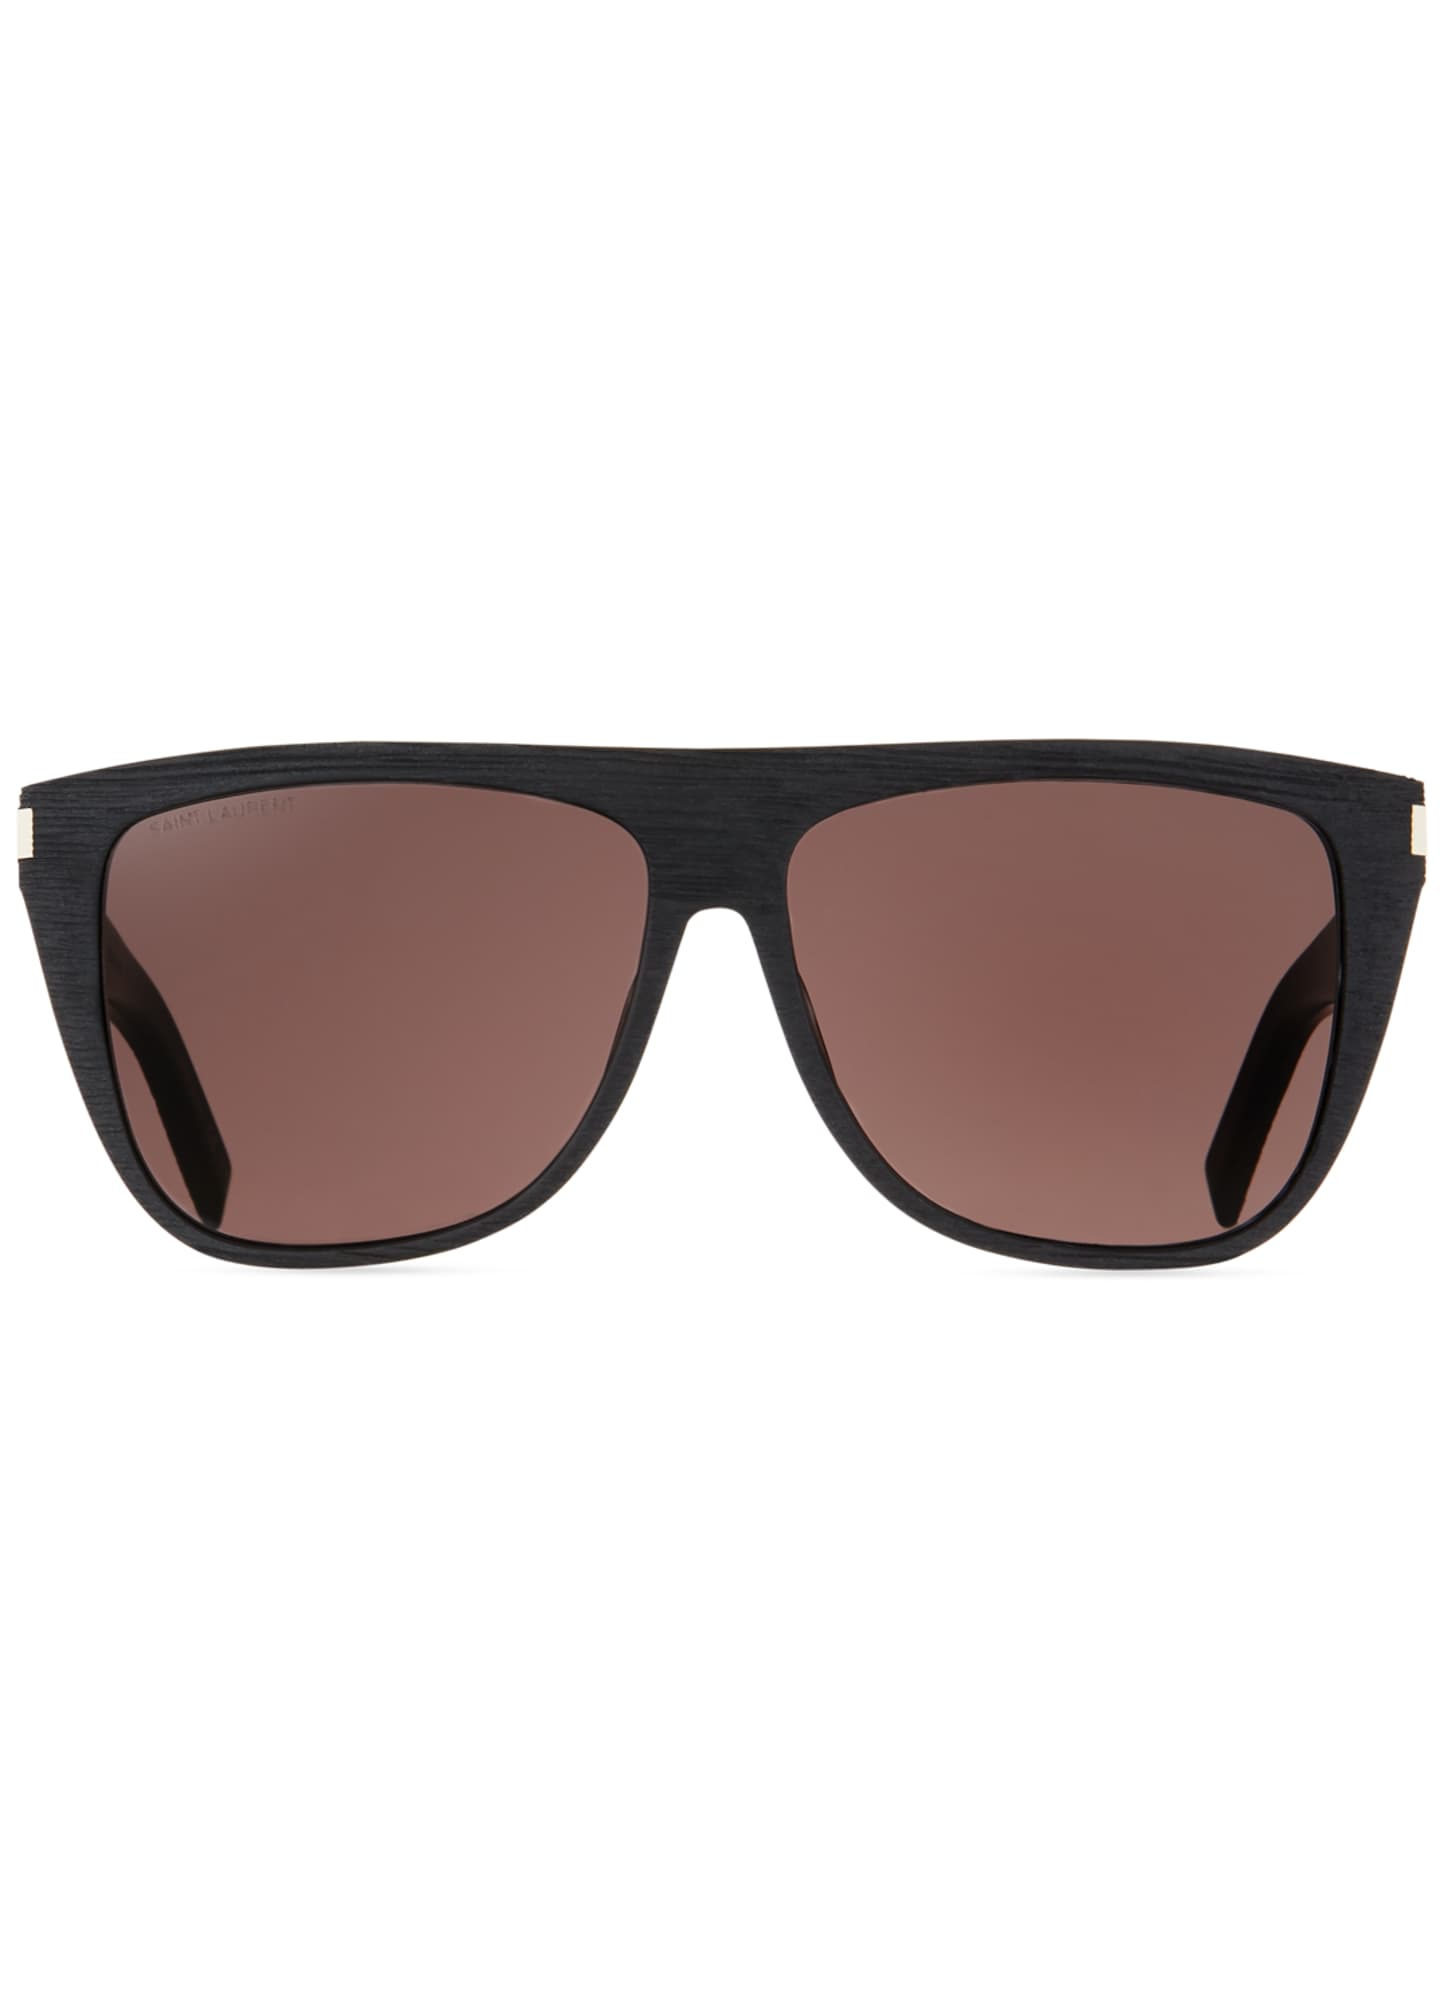 Image 2 of 3: Men's SL 292 Acetate Sunglasses